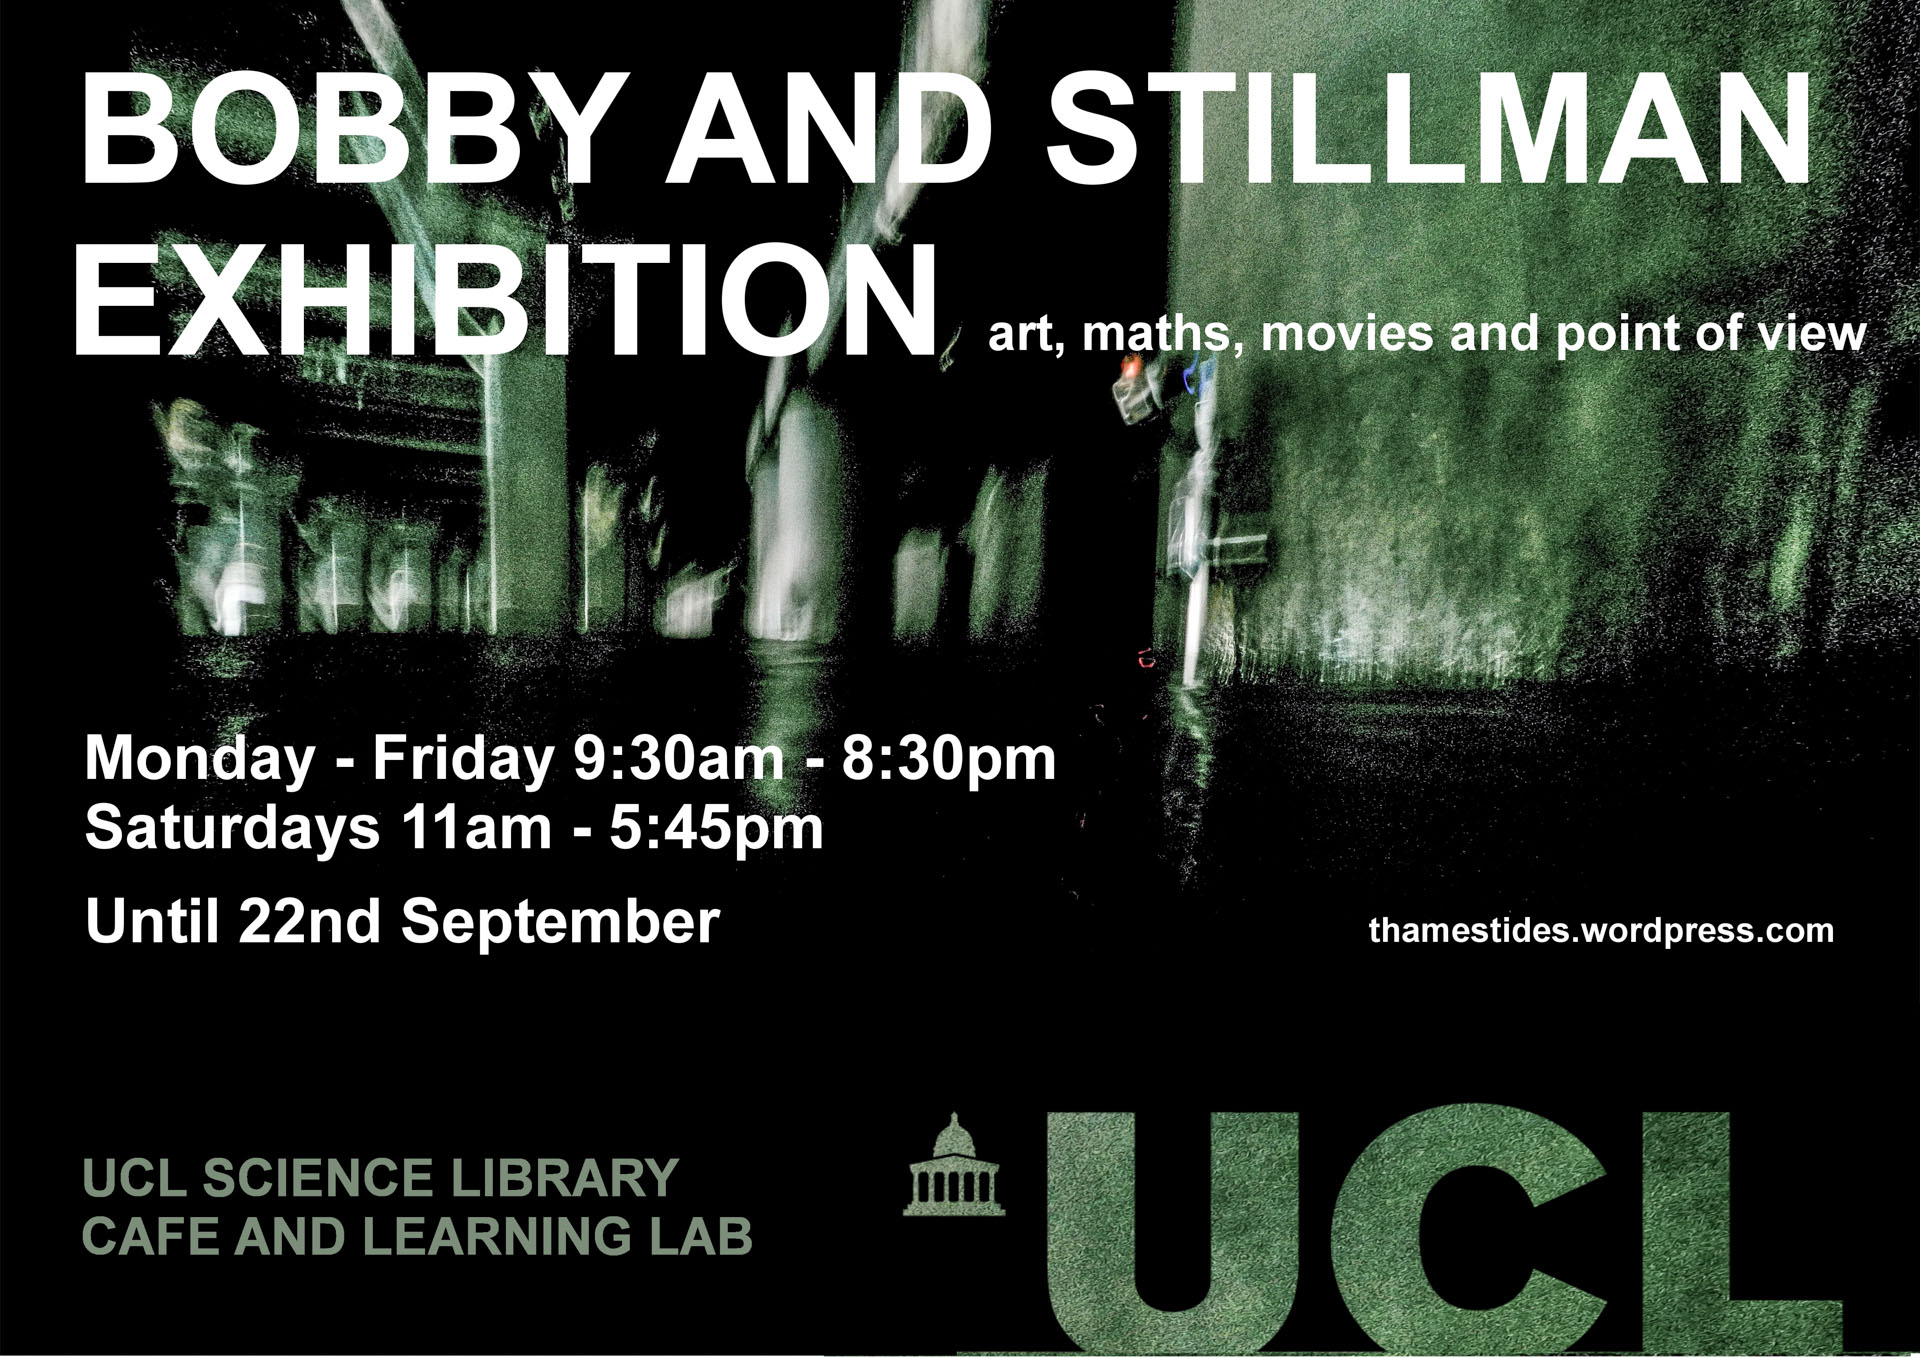 POSTER. Bobby and Stillman. Thames Tides, Susi Arnott, Crispin Hughes, Professor Sofia Olhede,UCL,Science Library